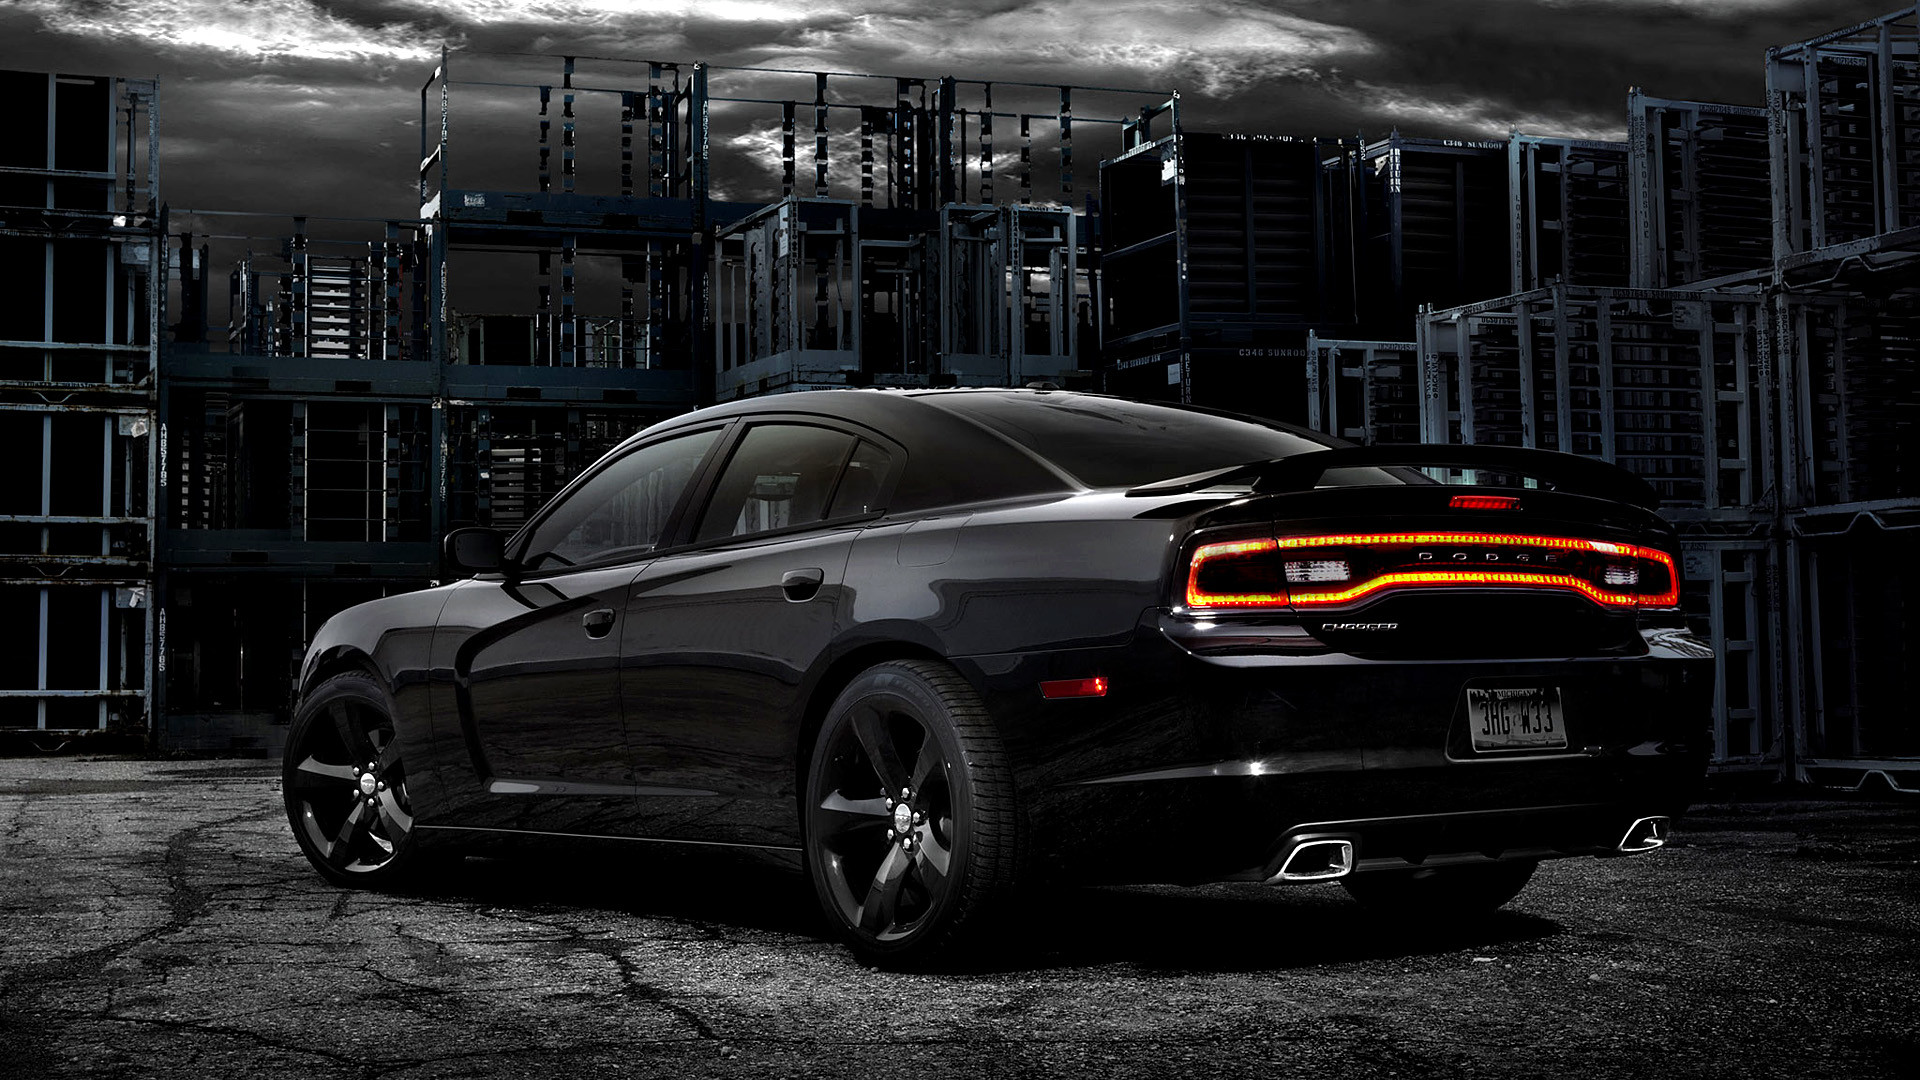 2018 Charger Demon >> Charger Hellcat Wallpaper (68+ images)